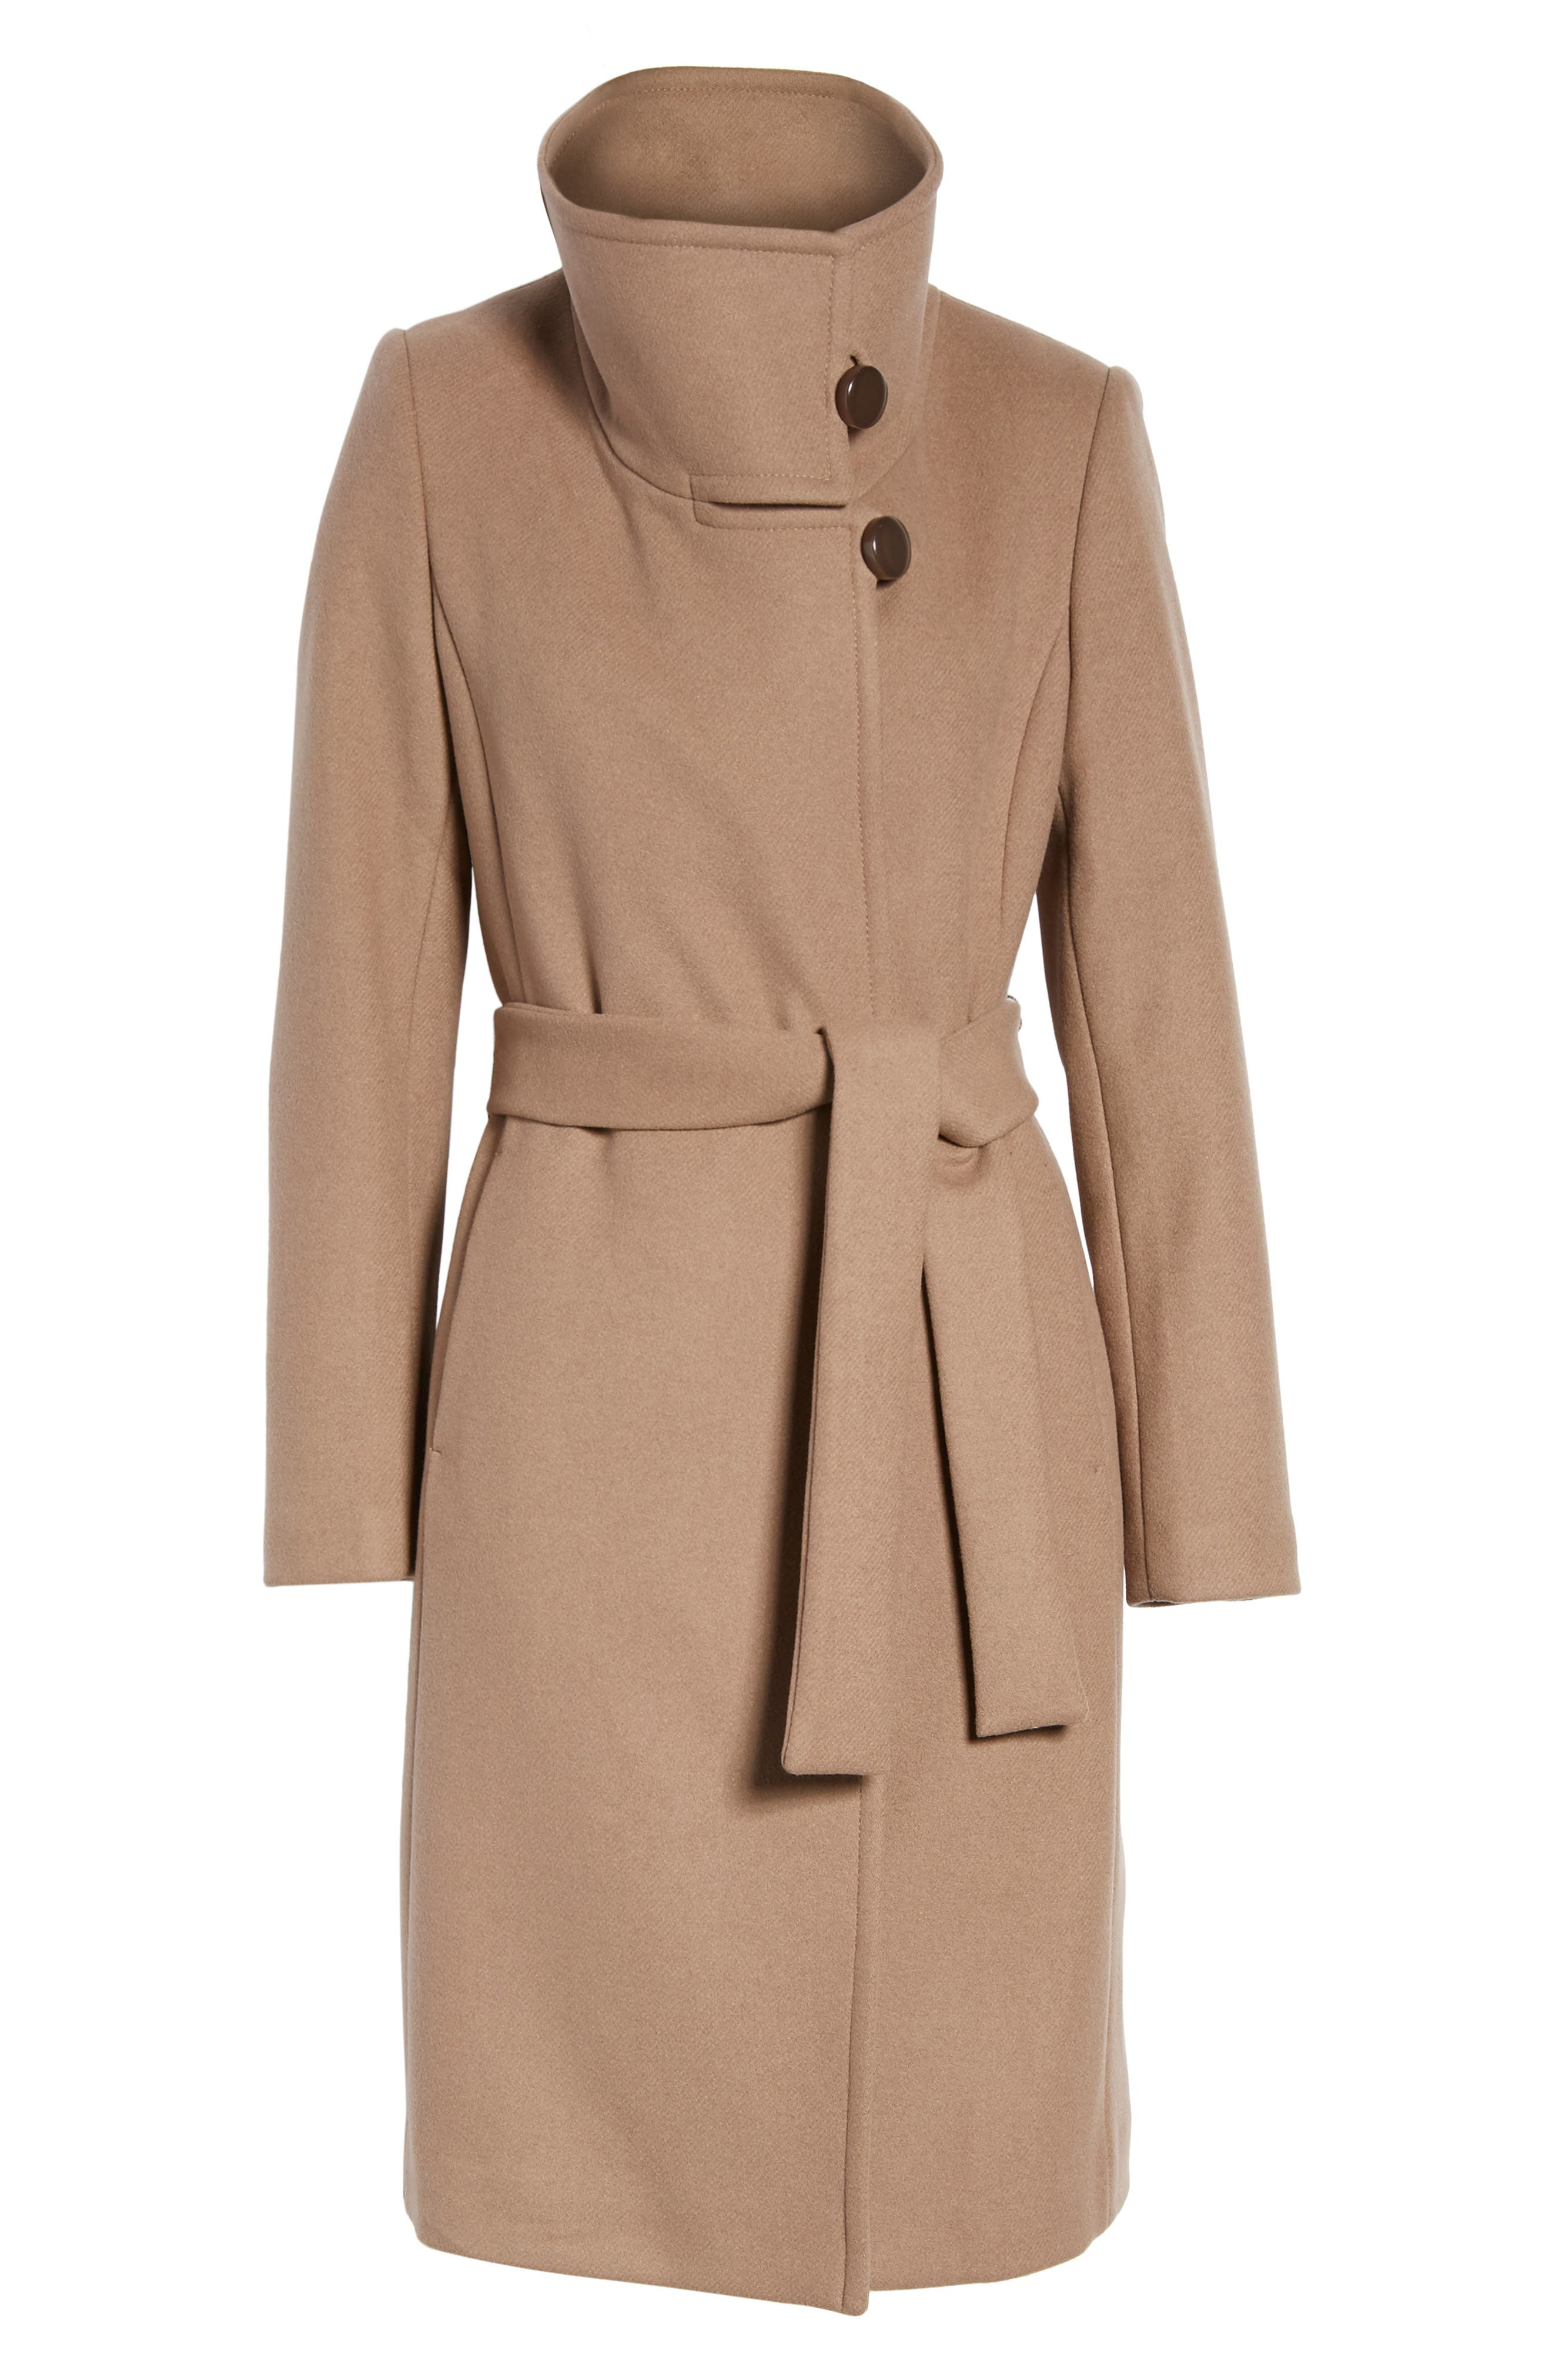 Daphne Oversized Collar Coat,                             Alternate thumbnail 5, color,                             261